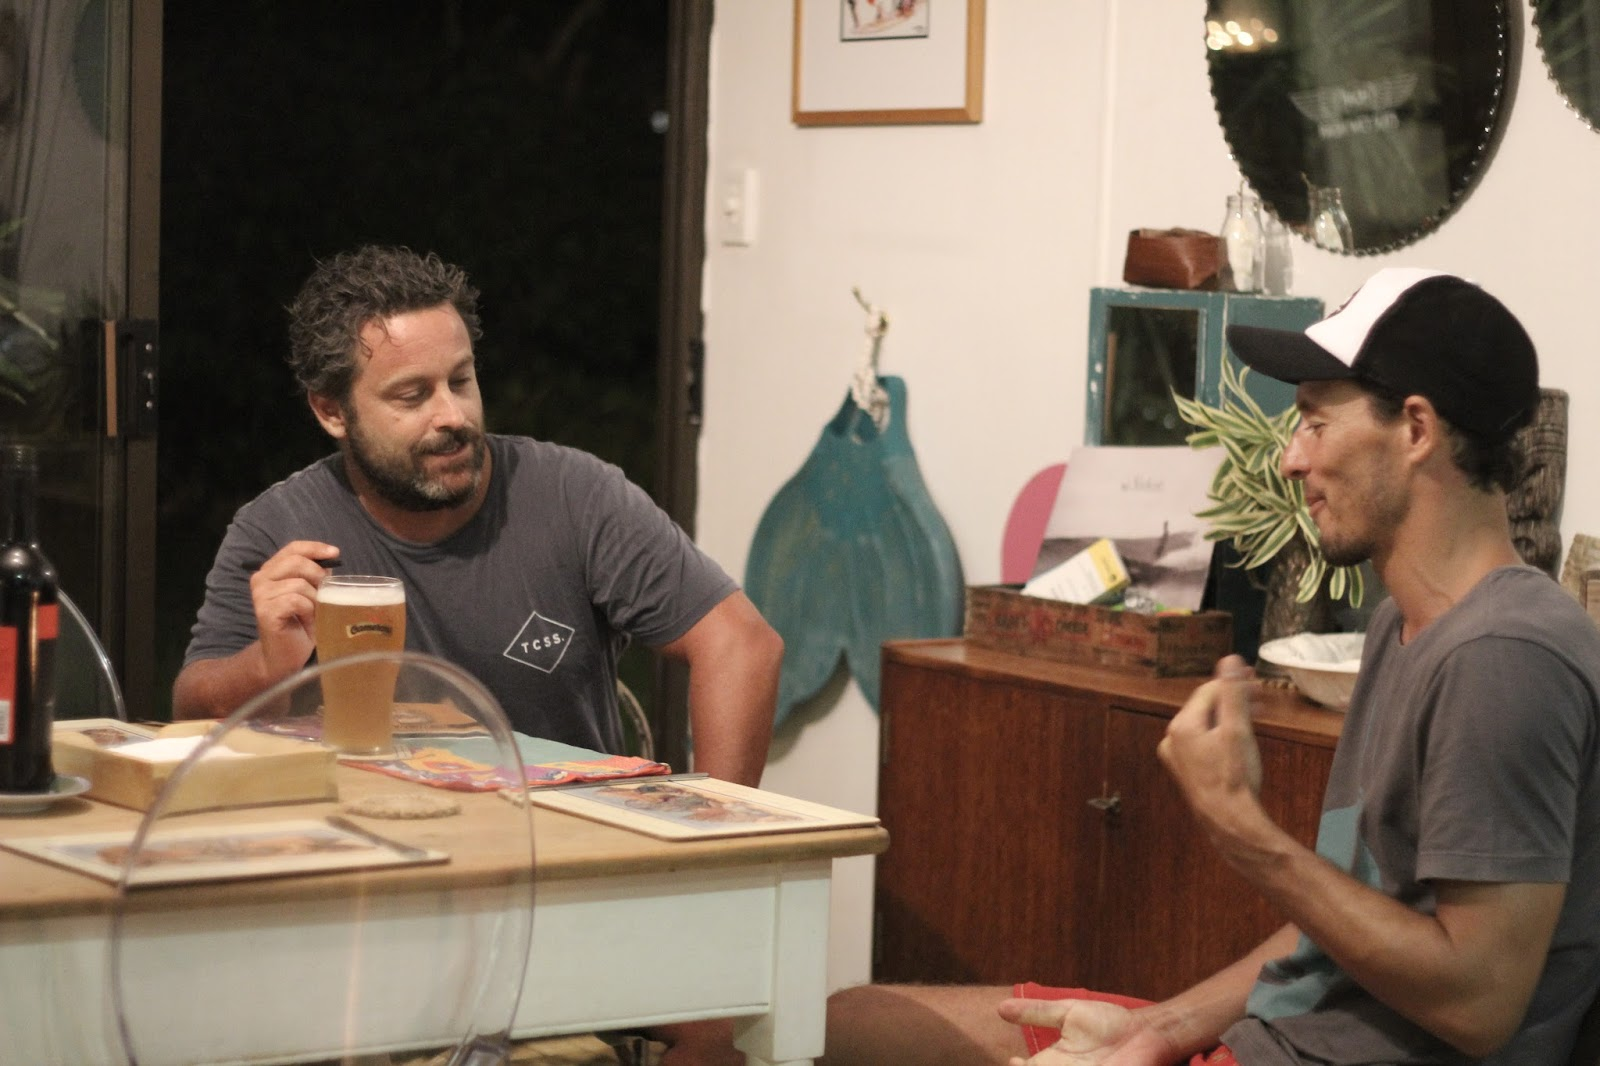 16-03-2016-australia-siebert-surfboards-14